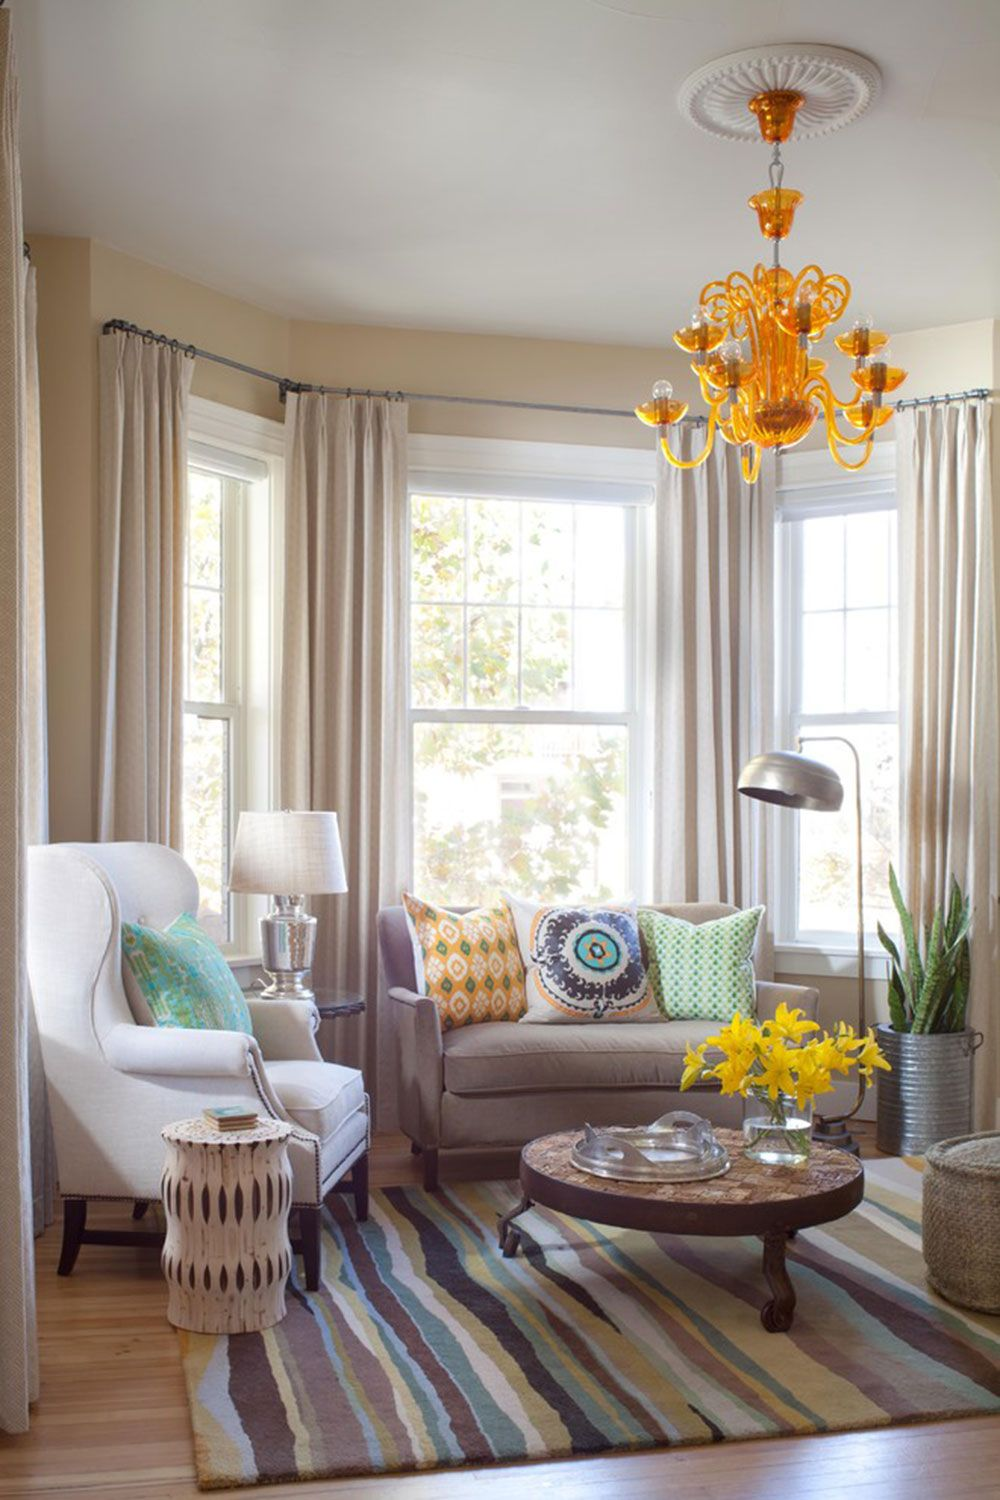 Homey Feelings With These Bay Window Decor Eclectic Living Room Contemporary Living Room Design Contemporary Family Rooms #small #living #room #with #bay #window